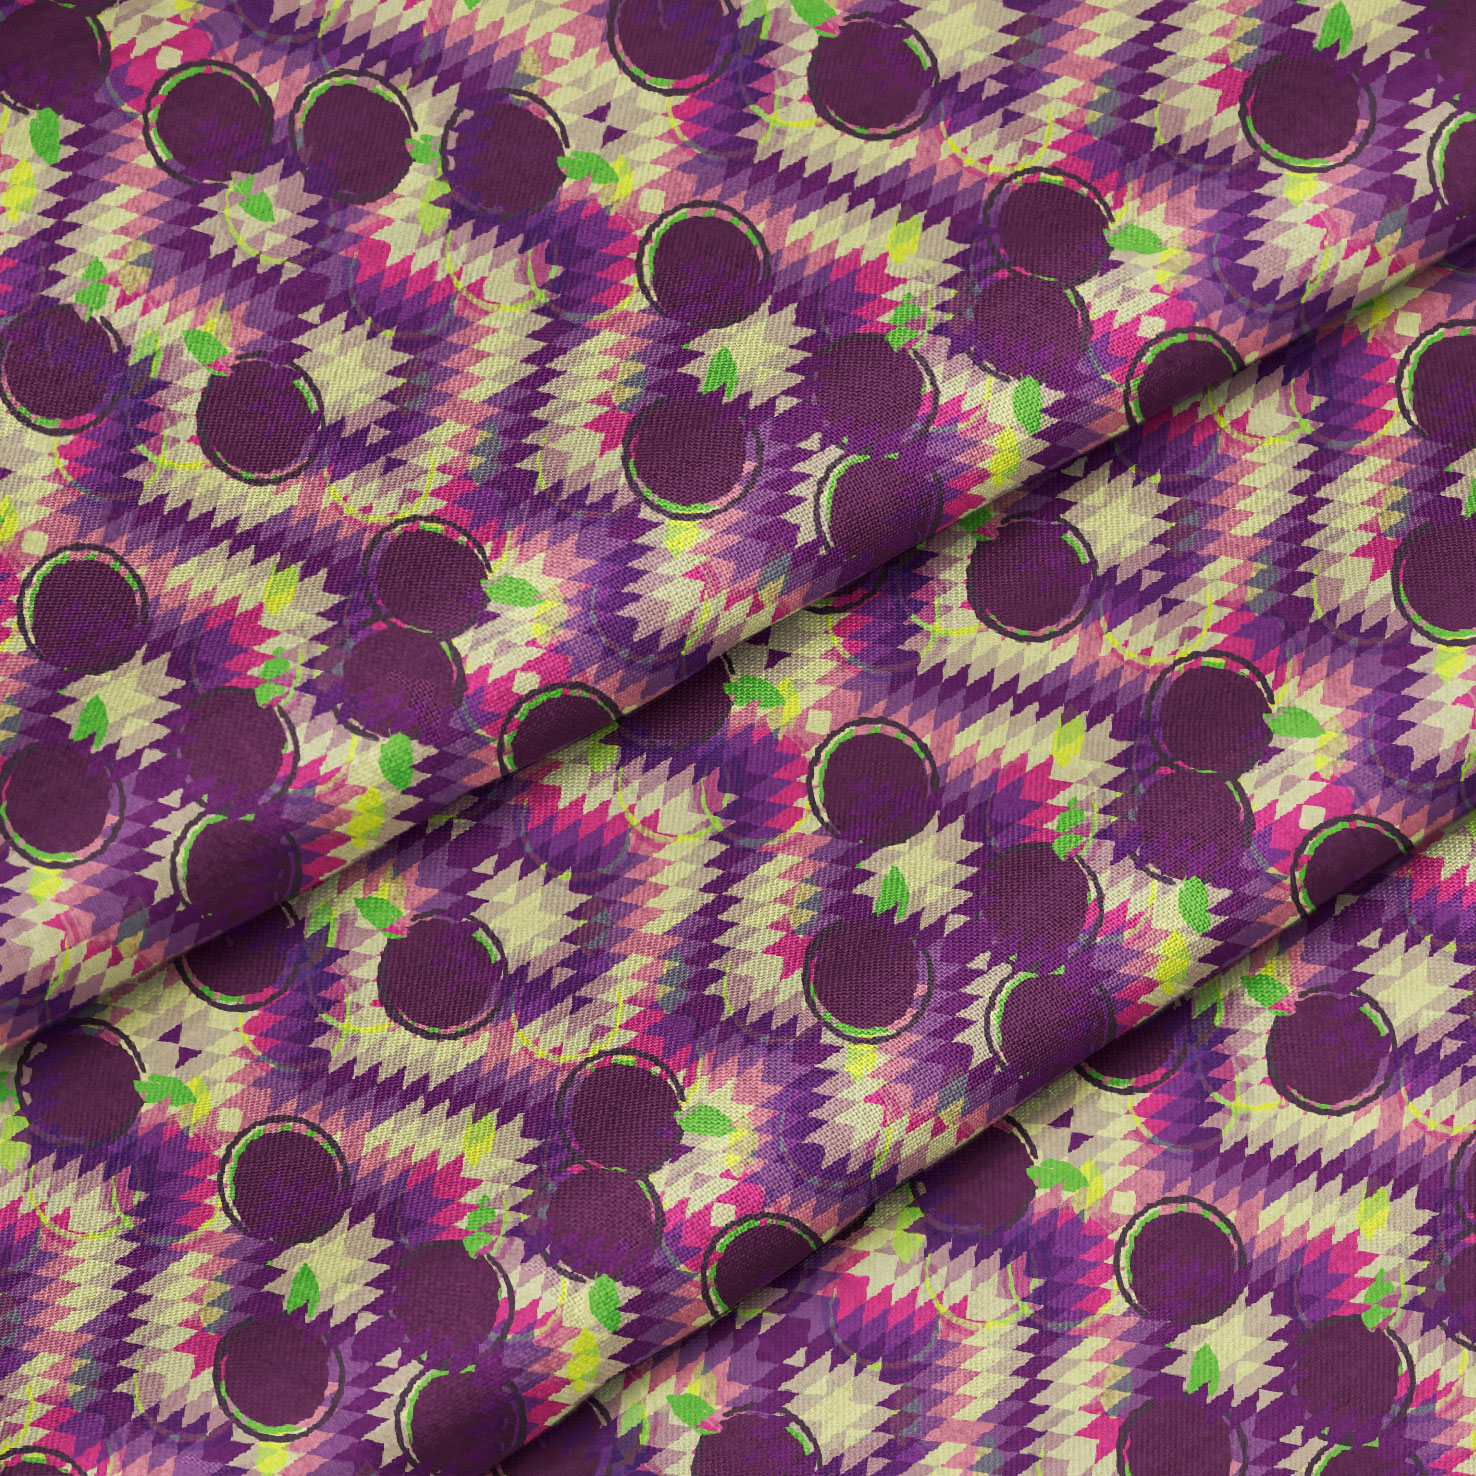 Cotton-Fabric-01.jpg